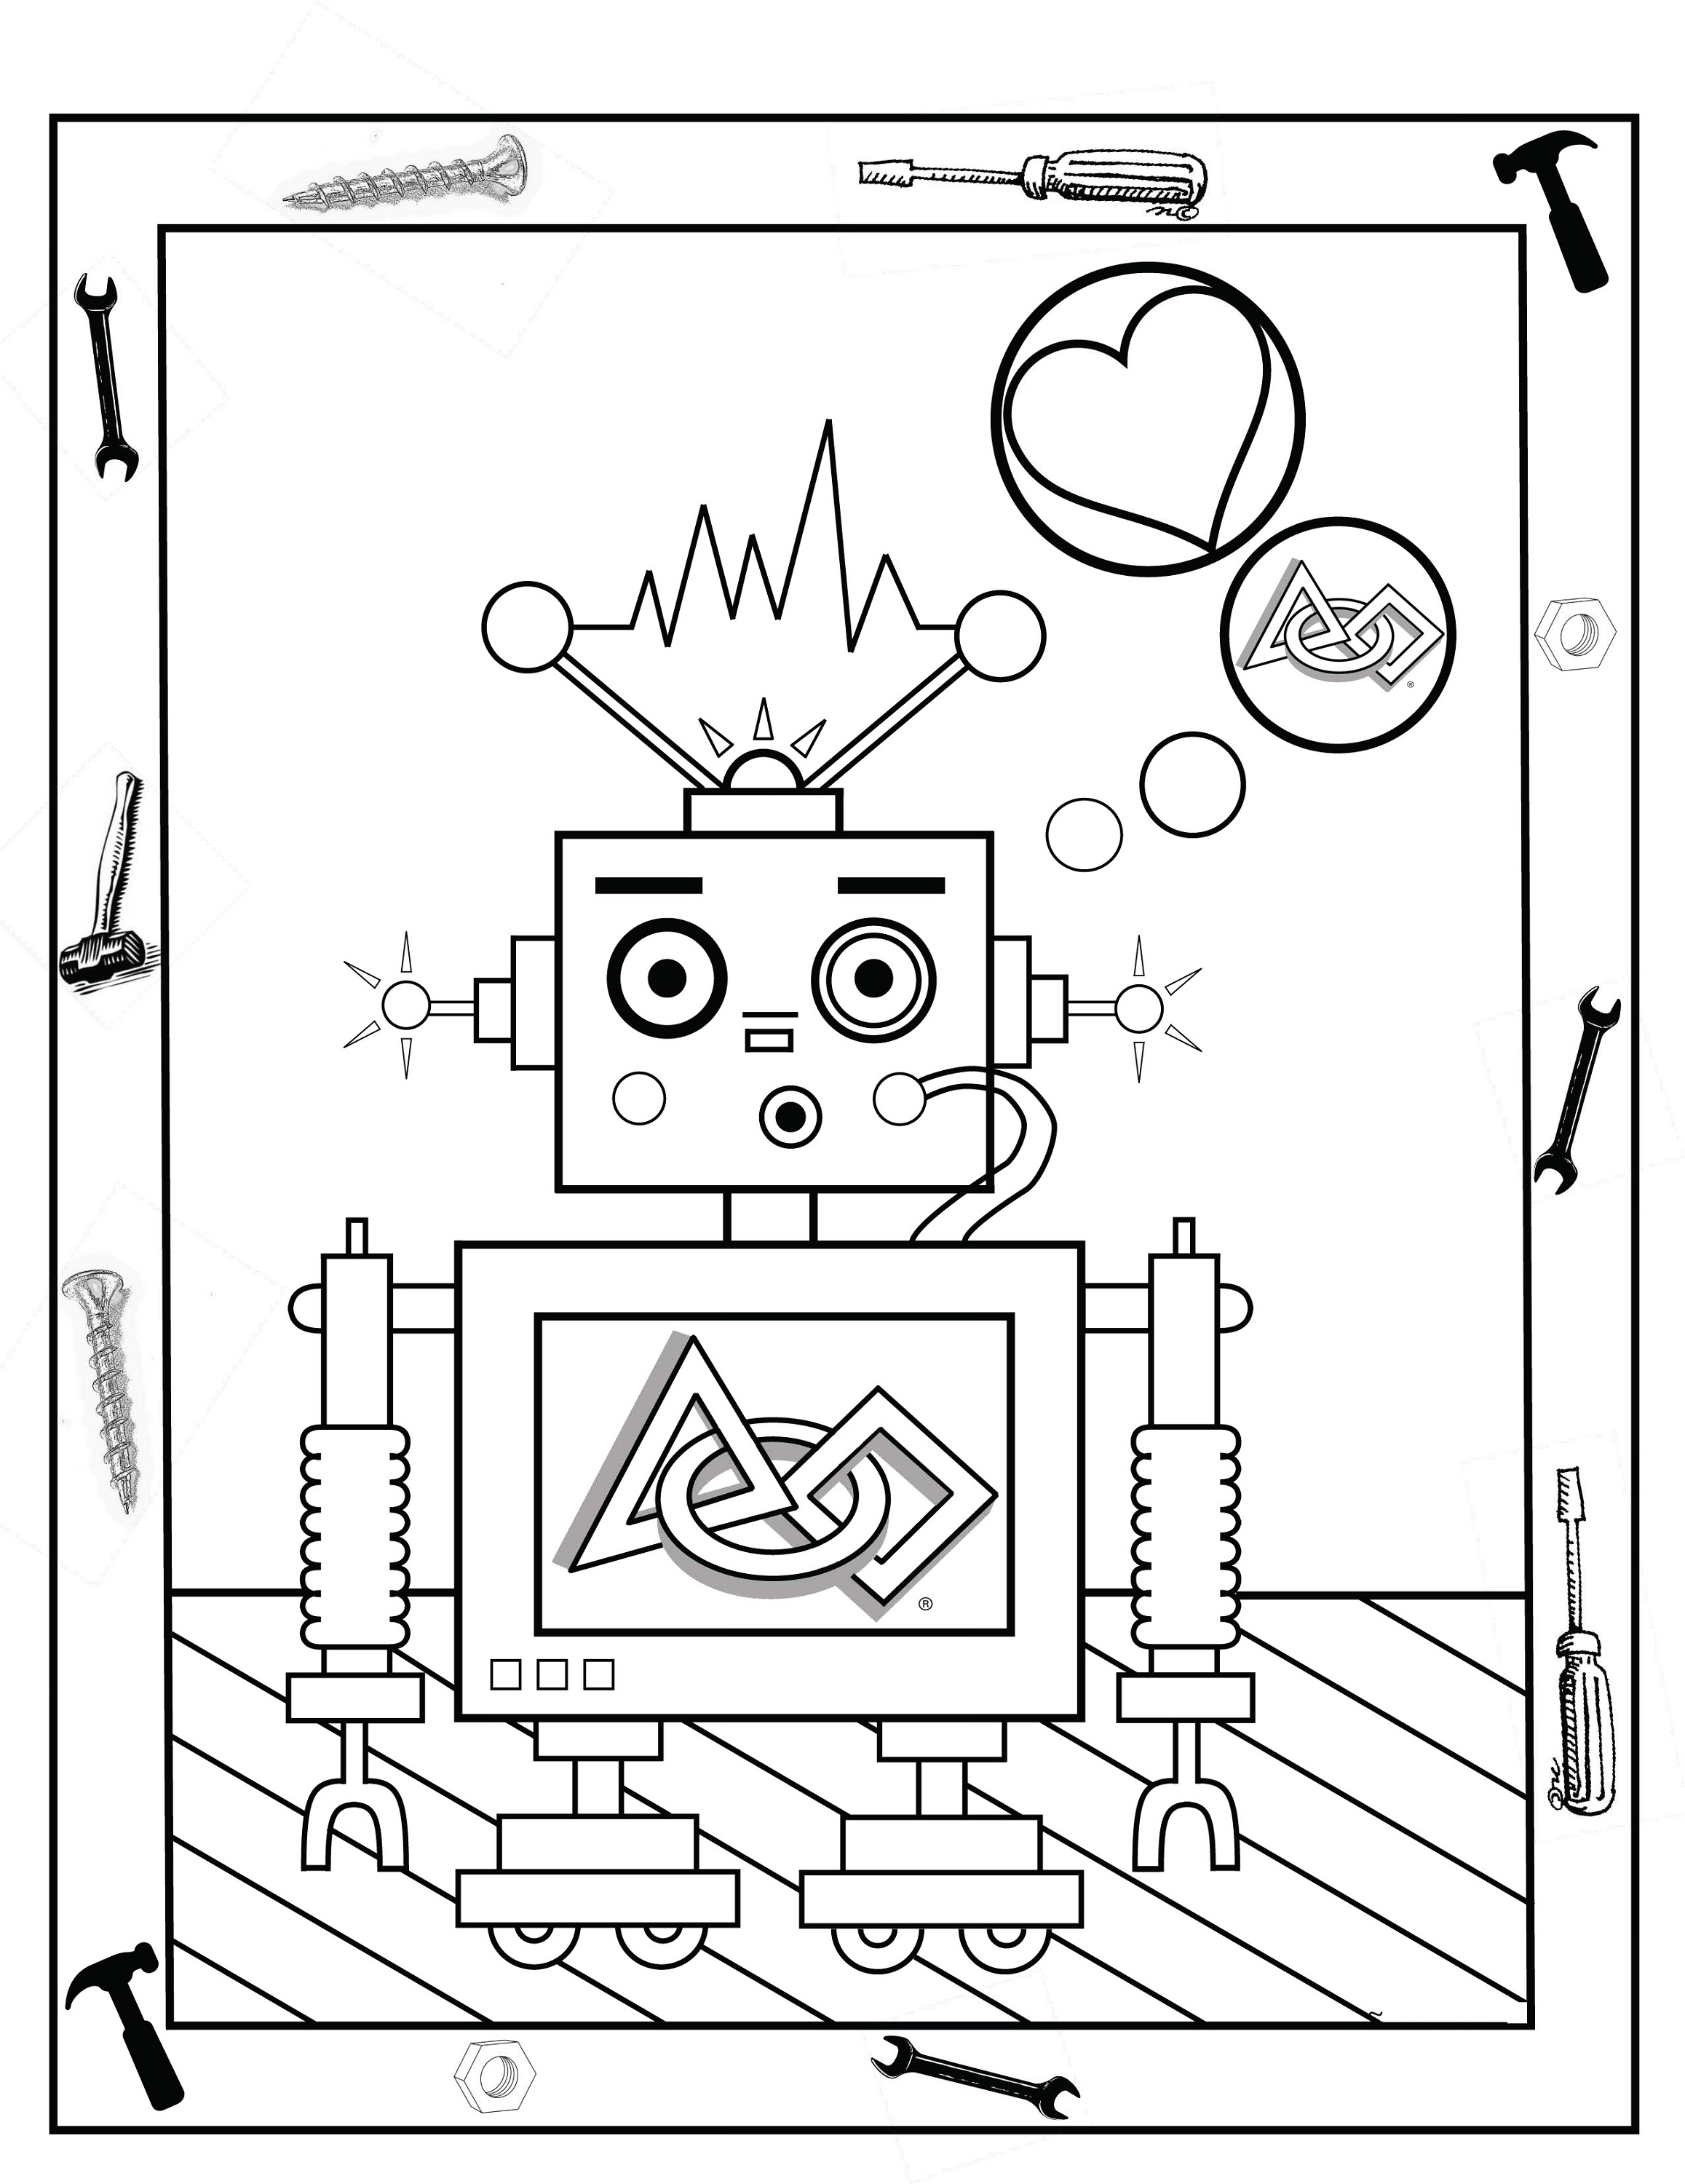 Printable Activity Sheets for Kids | Activity Shelter